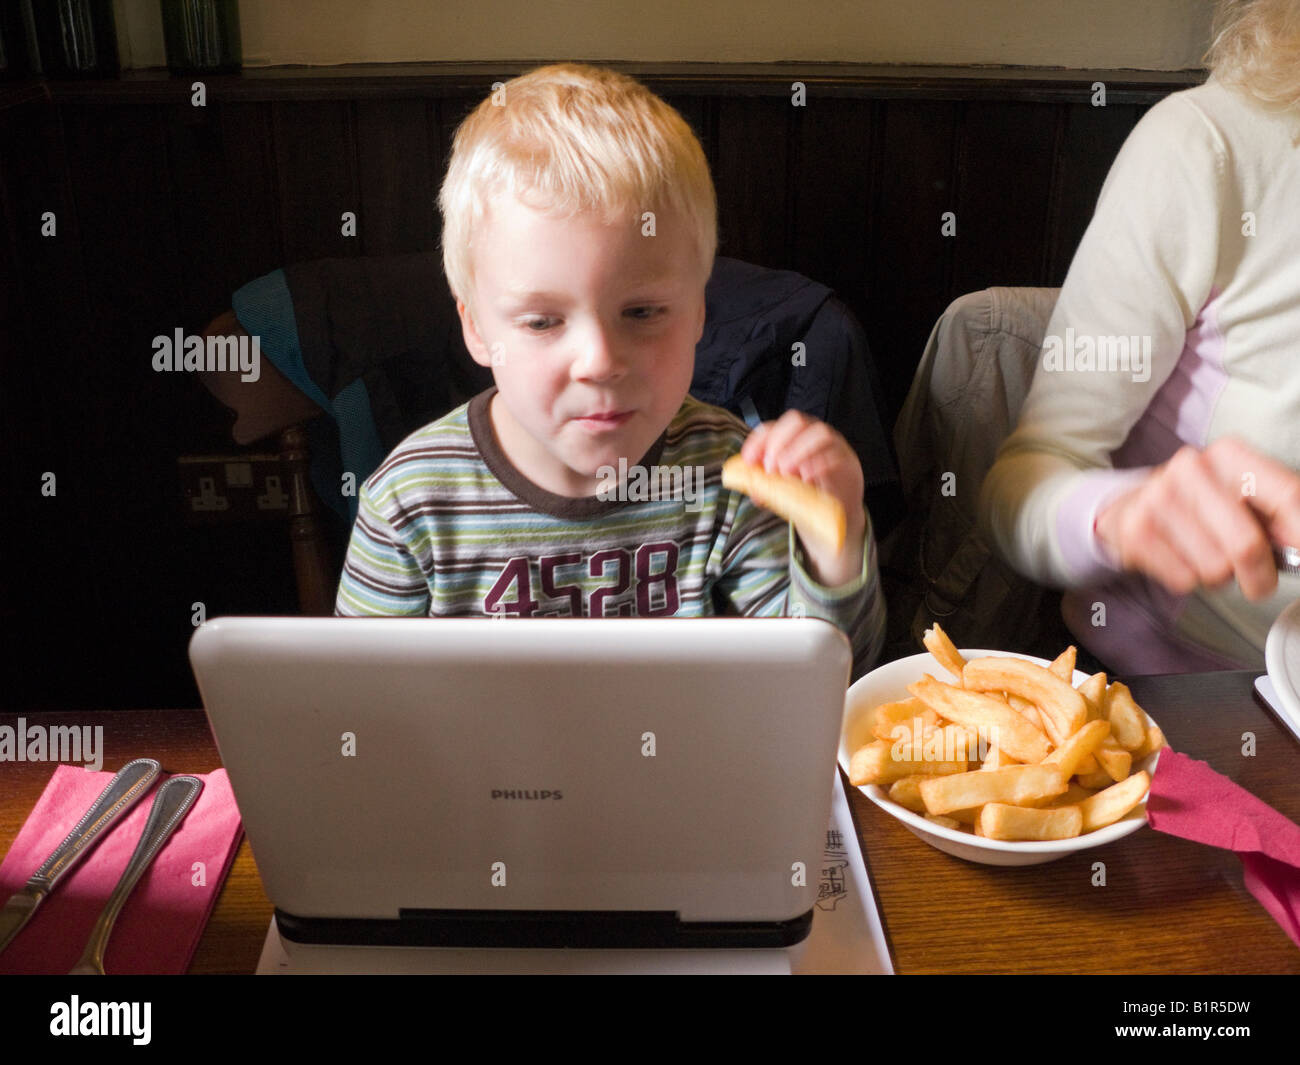 Young child / boy / kid watches / watching a TV film on a portable DVD player while eating chips. UK - Stock Image